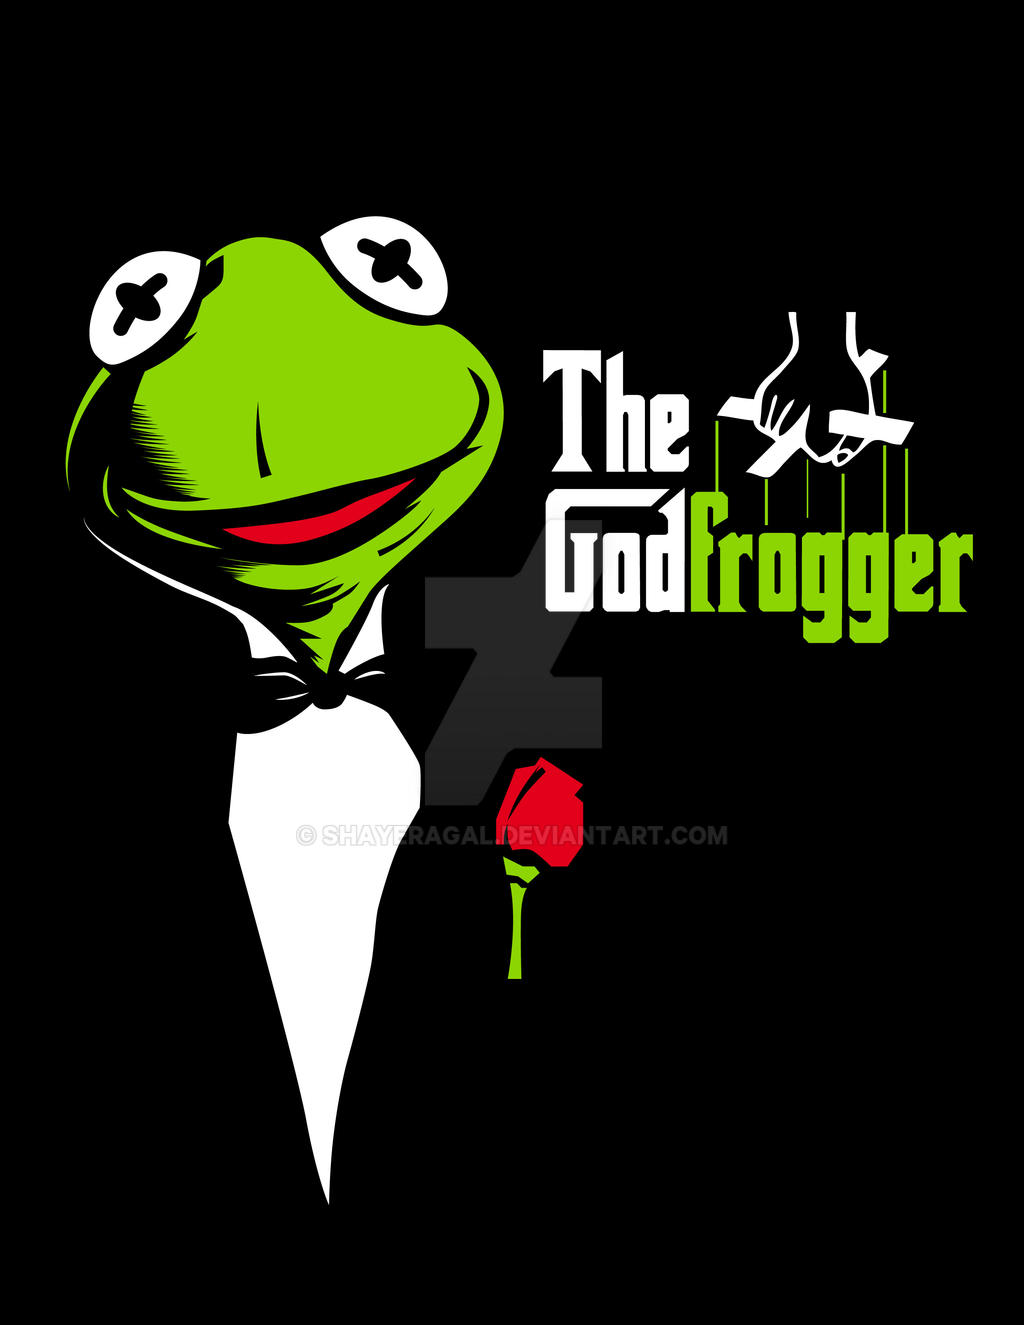 the GodFrogger by Shayeragal